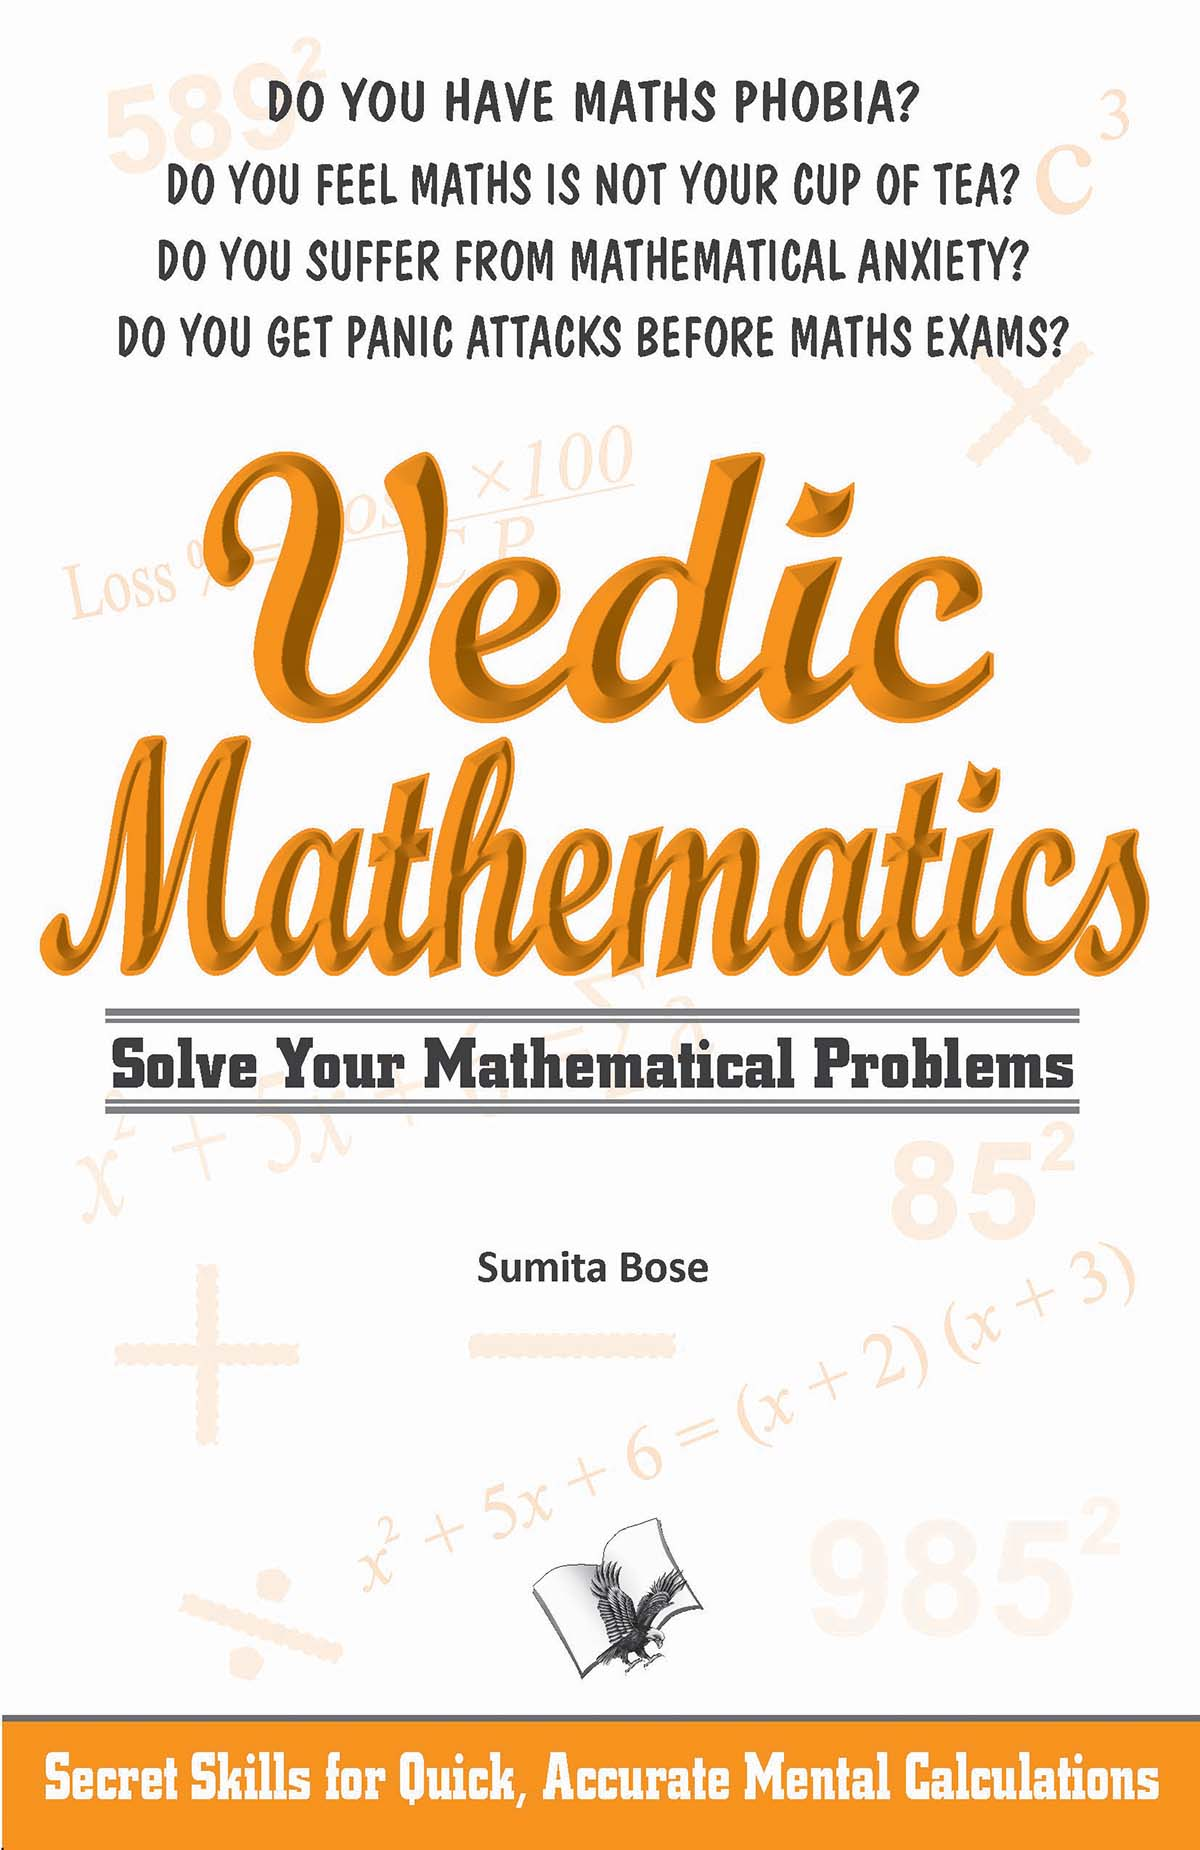 VEDIC MATHEMATICS (SOLVE YOUR MATHEMATICAL PROBLEMS)